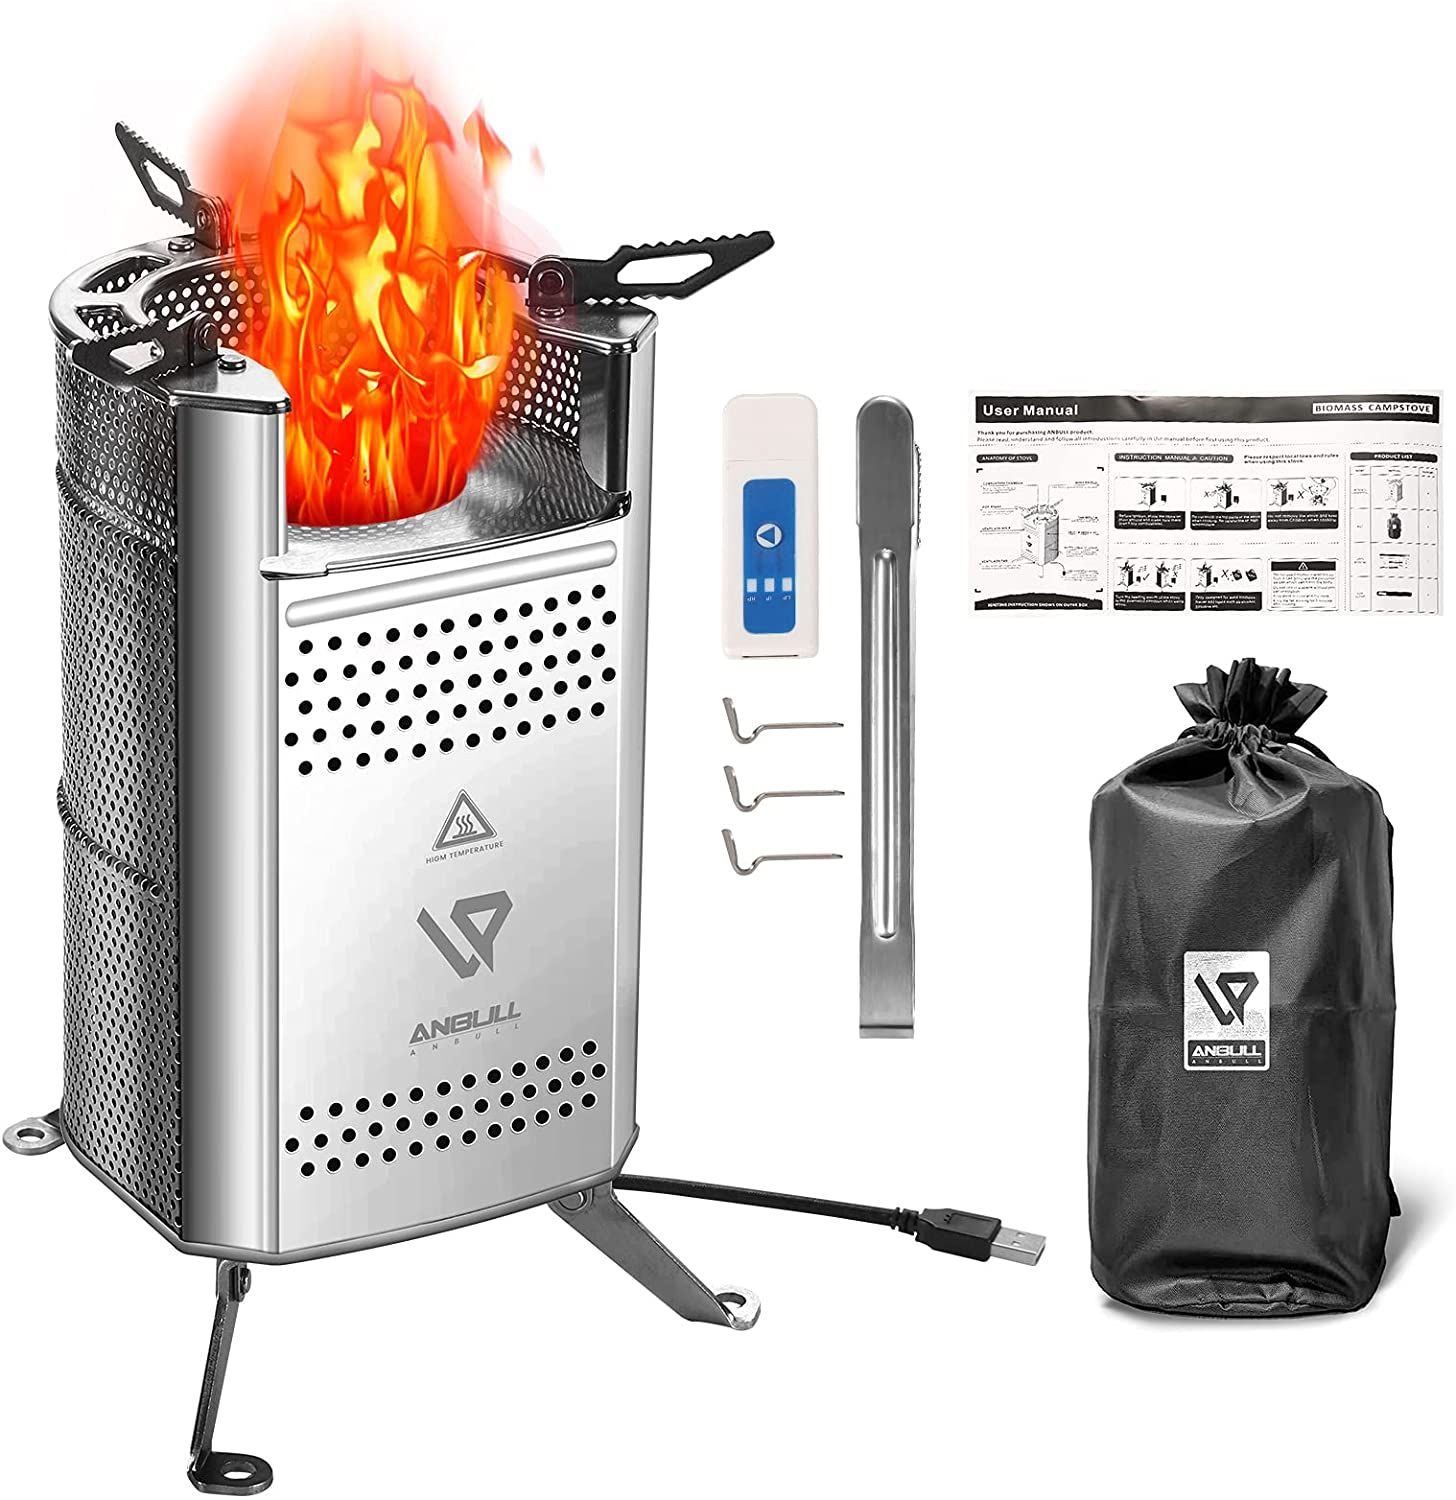 Anbull Camping Stove Biomass Stoves for Seattle Mall Compact Camp El Paso Mall Kit